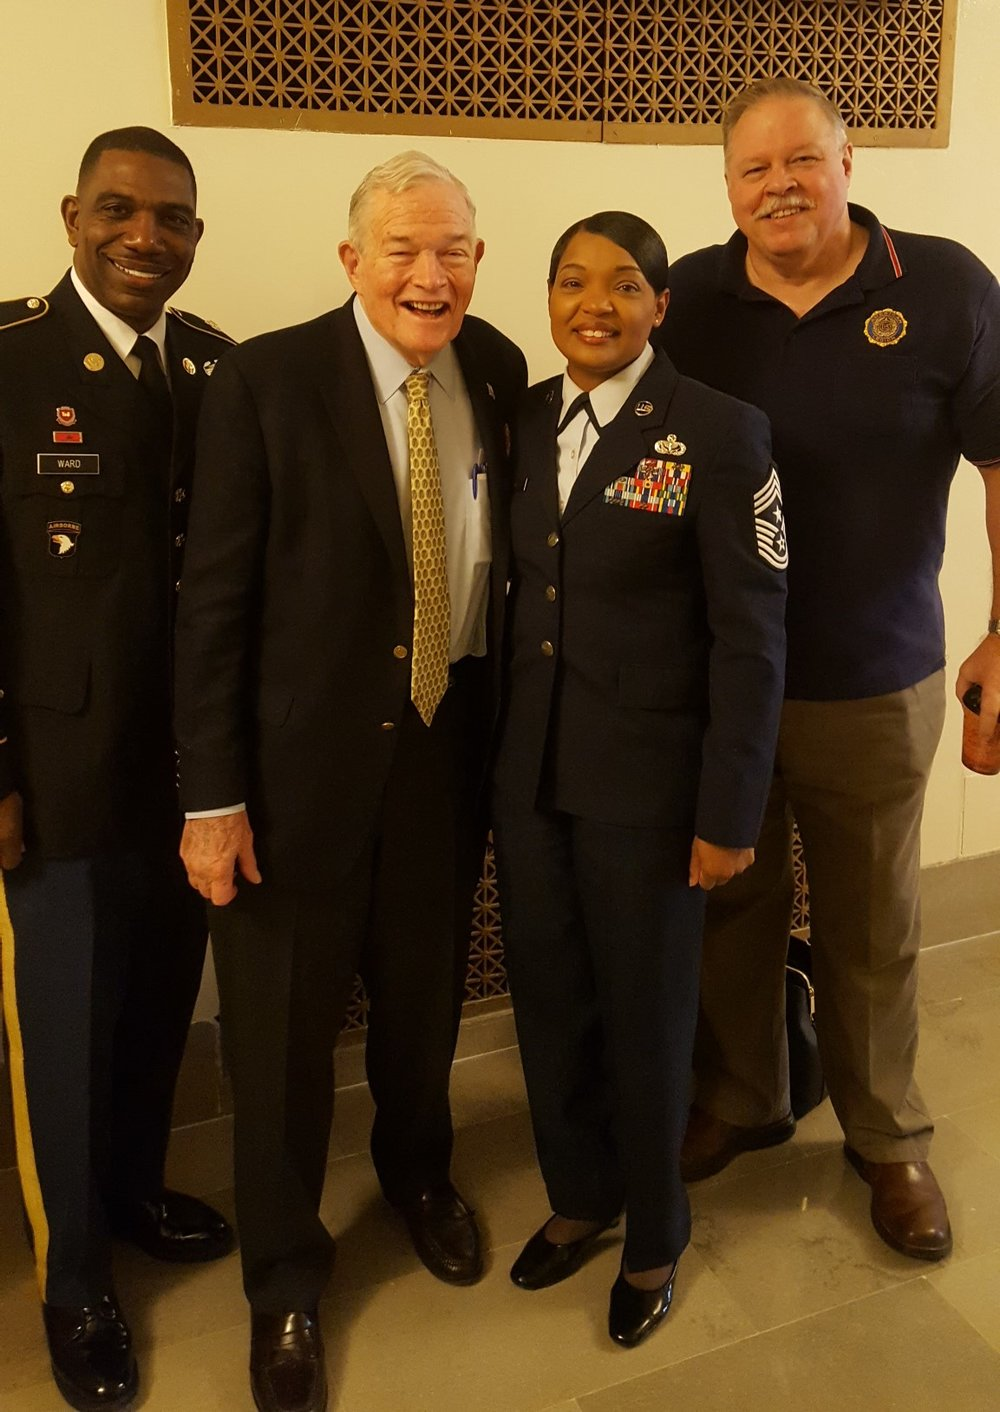 Senator Kit Bond posing with our military heroes